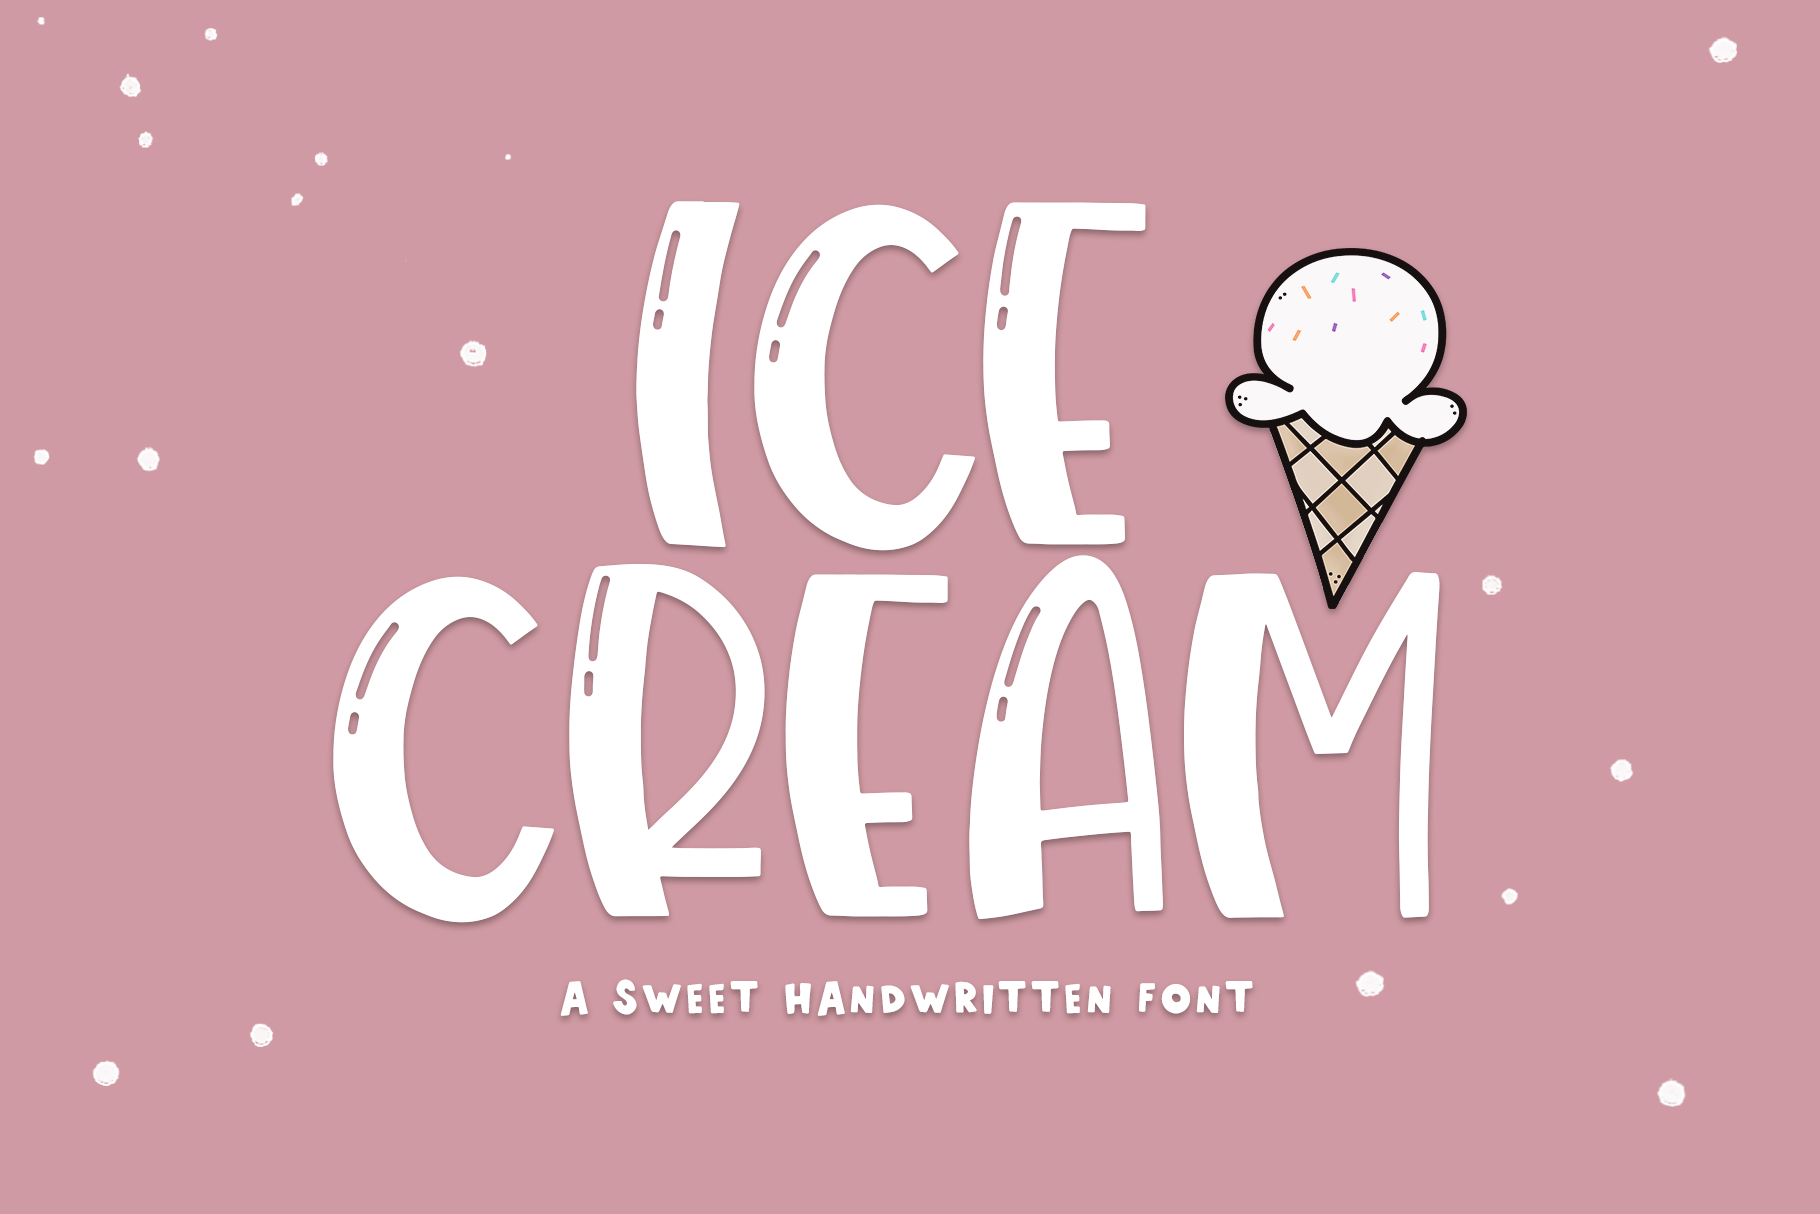 Ice Cream- A Handwritten Font example image 1